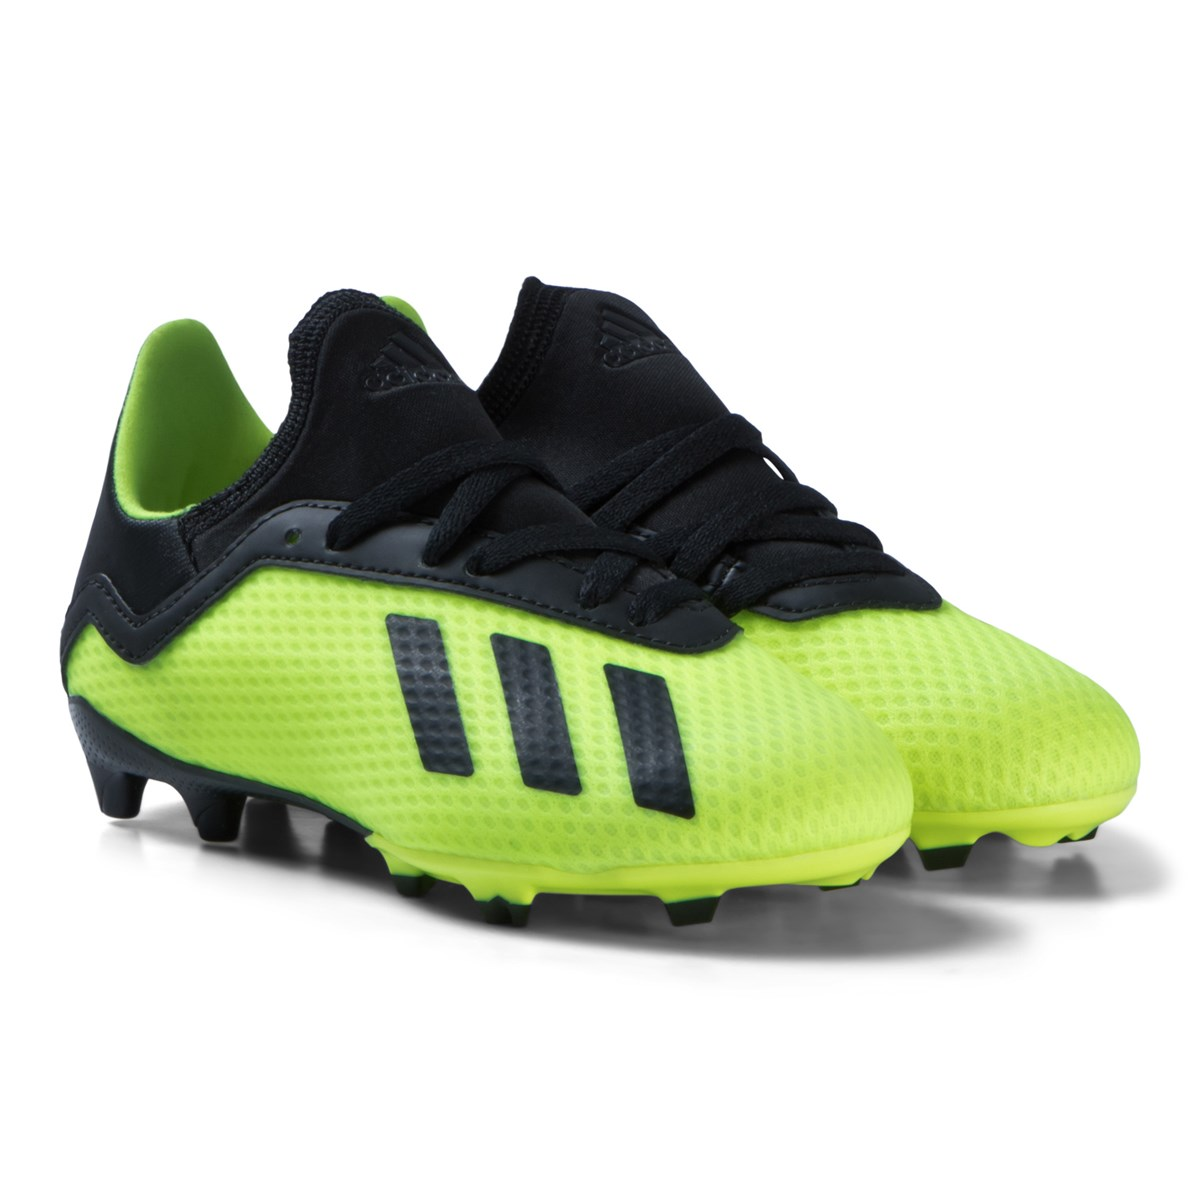 timeless design cb236 94bc3 adidas Performance - Solar Yellow X 18.3 Firm Ground Soccer Boots -  Babyshop.com